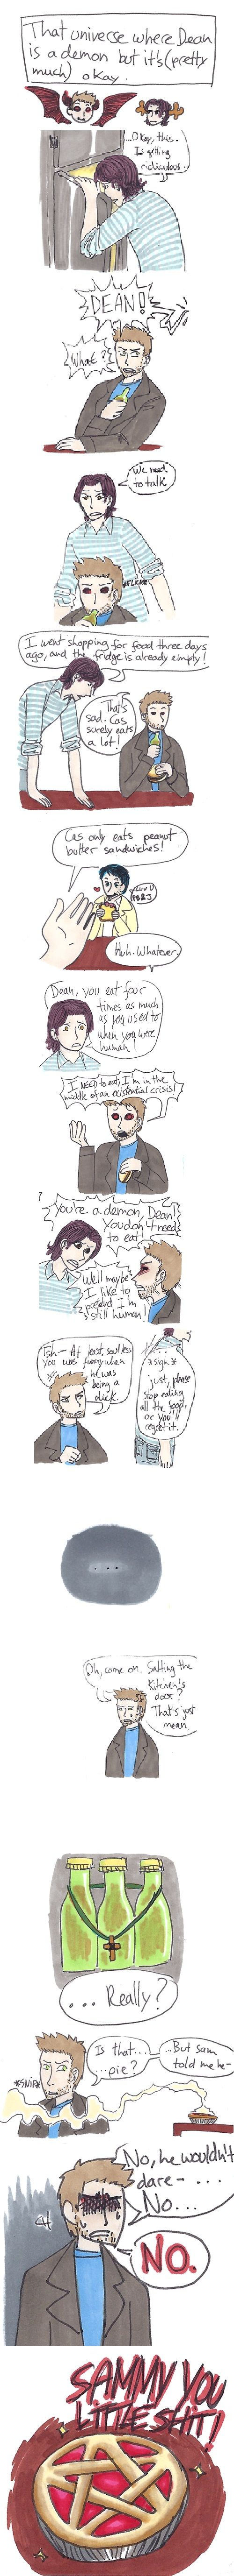 """""""That universe where Dean is a demon, but it's (pretty much) okay."""" 